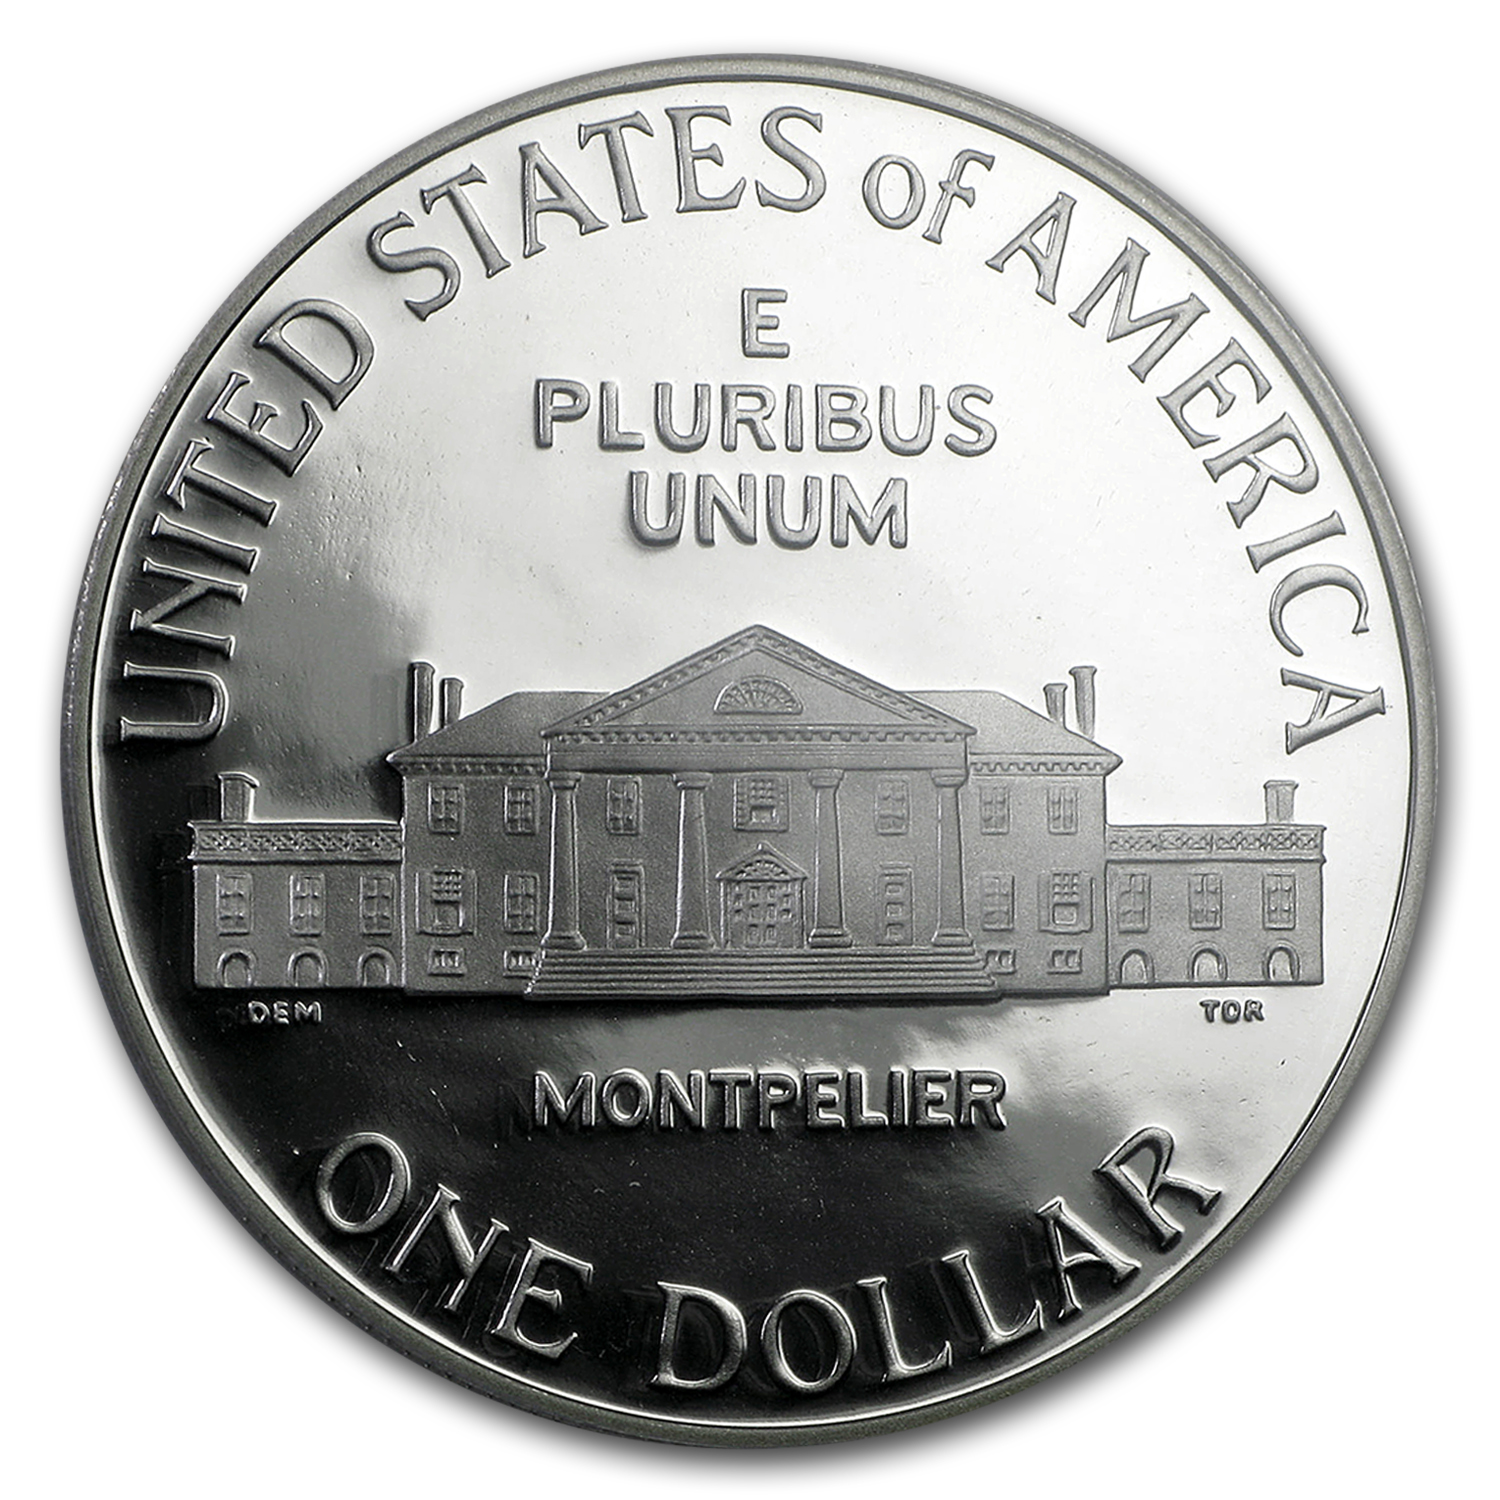 1993-S Bill of Rights $1 Silver Commemorative - PR-70 DCAM PCGS